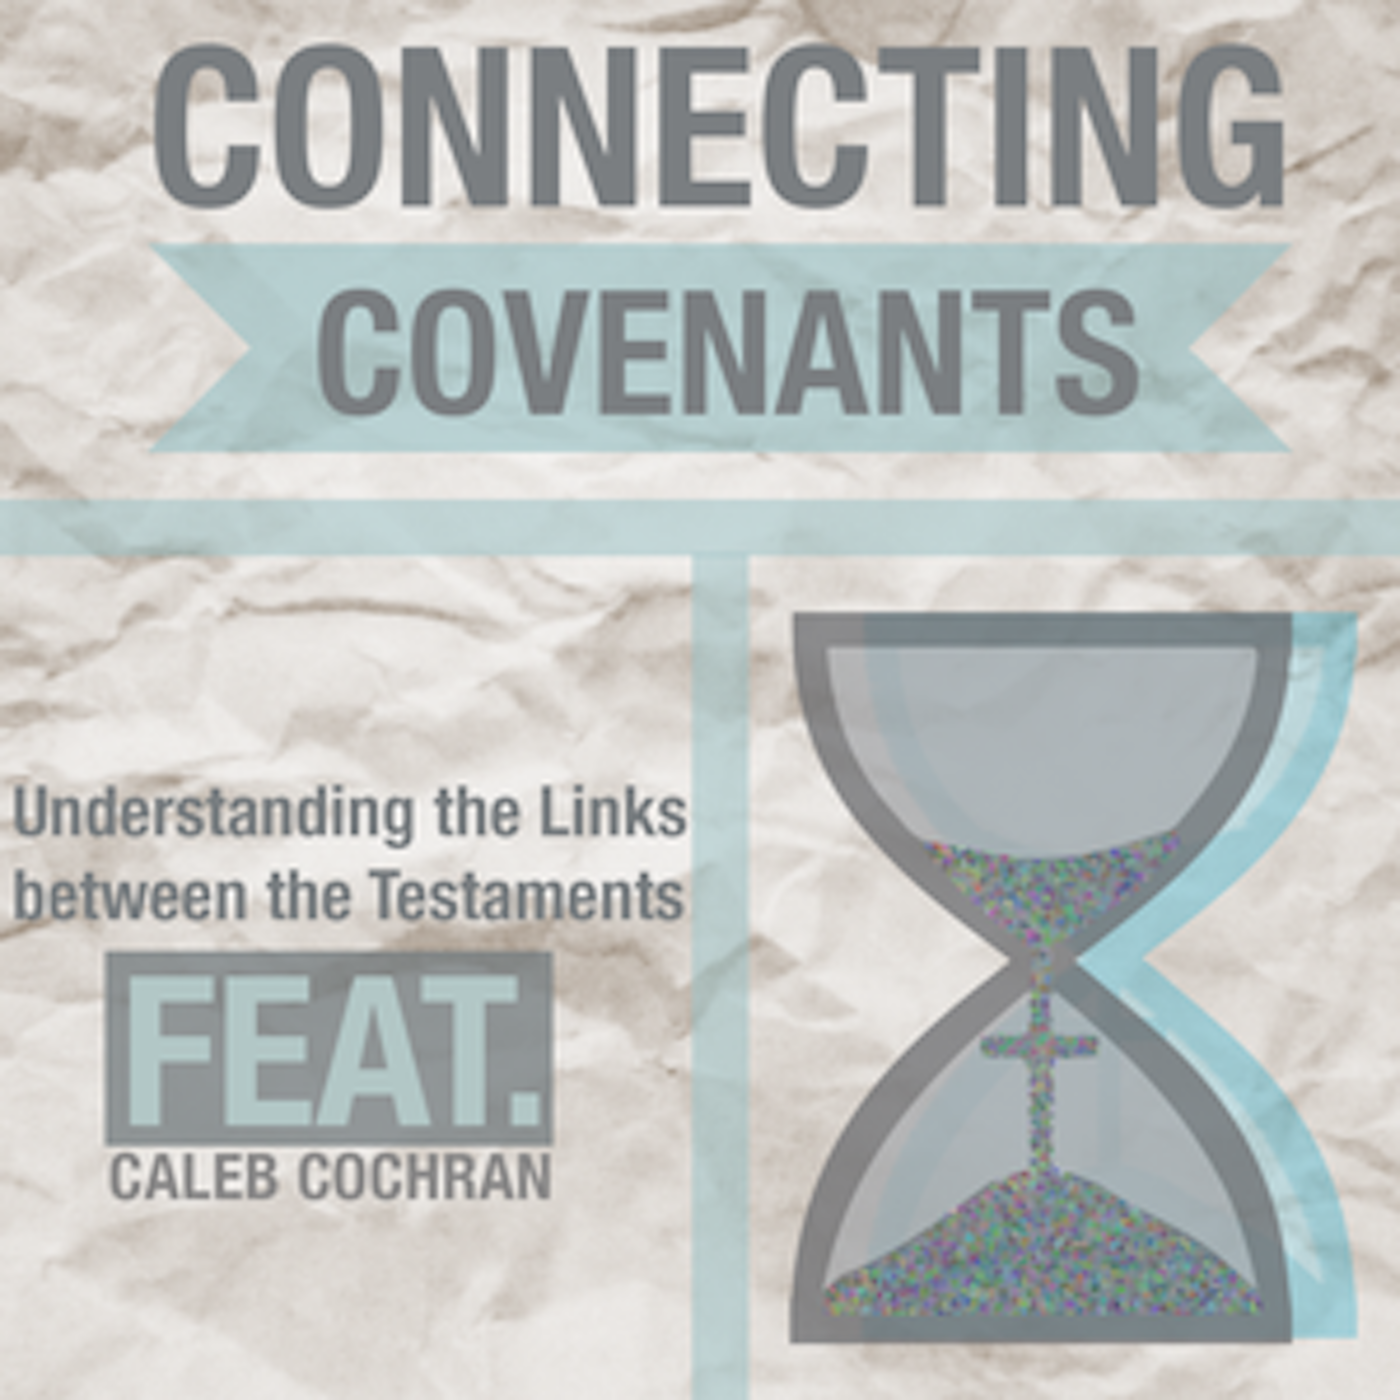 Connecting Covenants - Walking In His Footsteps